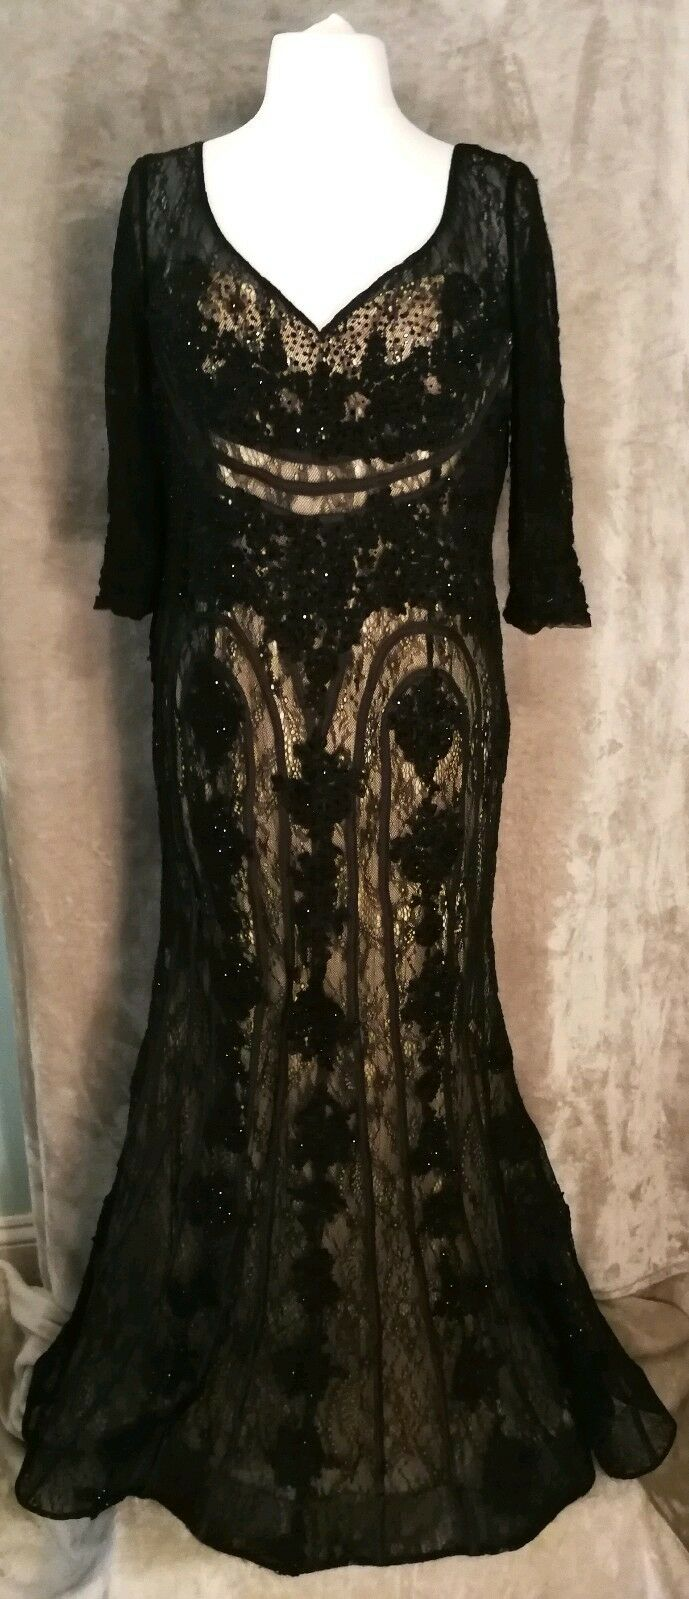 Viviana London schwarz lace mesh sparkly long mermaid ball gown dress Größe 14